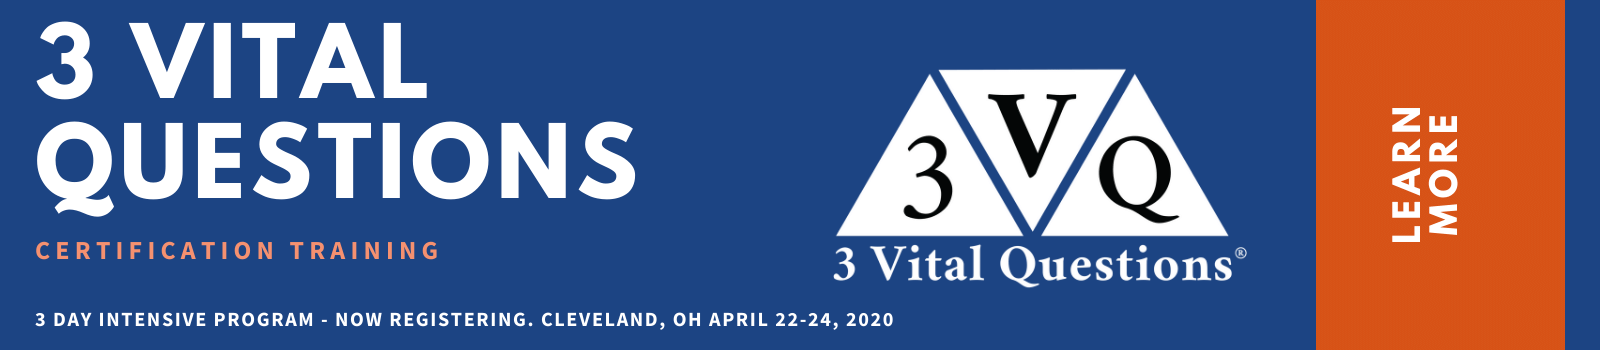 3 VITAL QUESTIONS CERTIFICATION TRAINING. NOW REGISTERING - CLEVELAND, OH APRIL 22-24, 2020